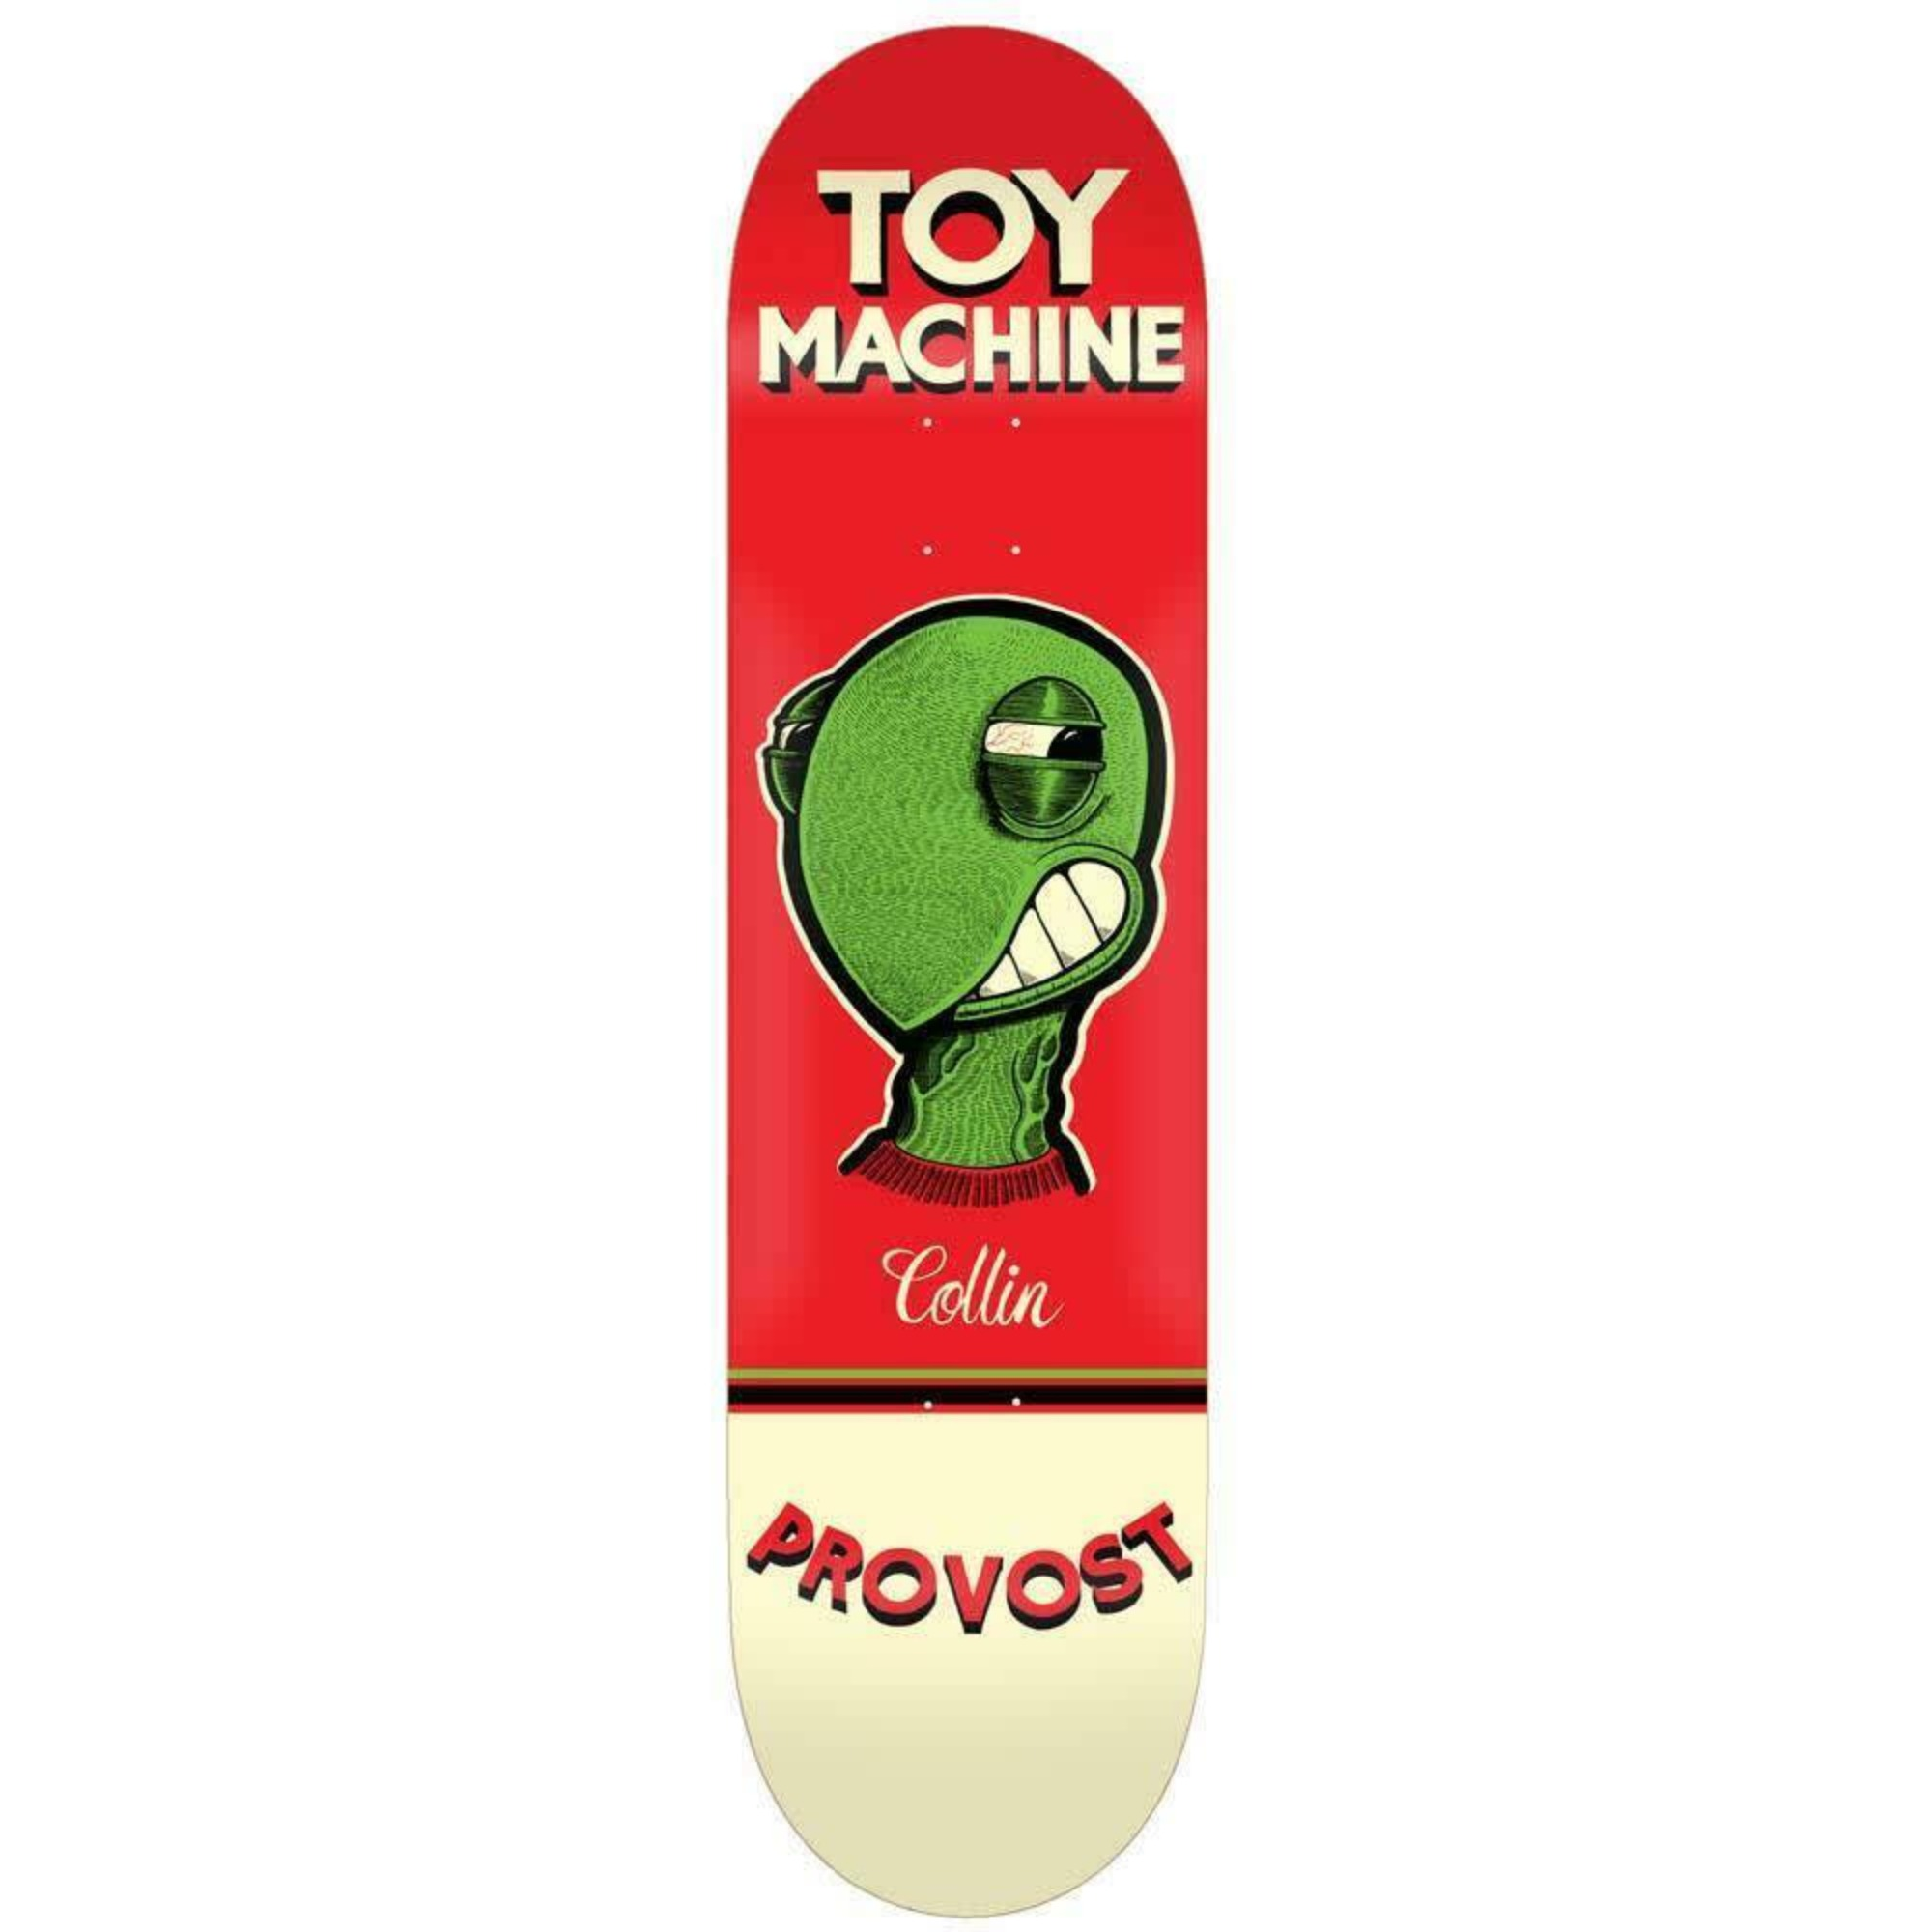 Toy Machine - Provost Pen 'N' Ink - 8.0